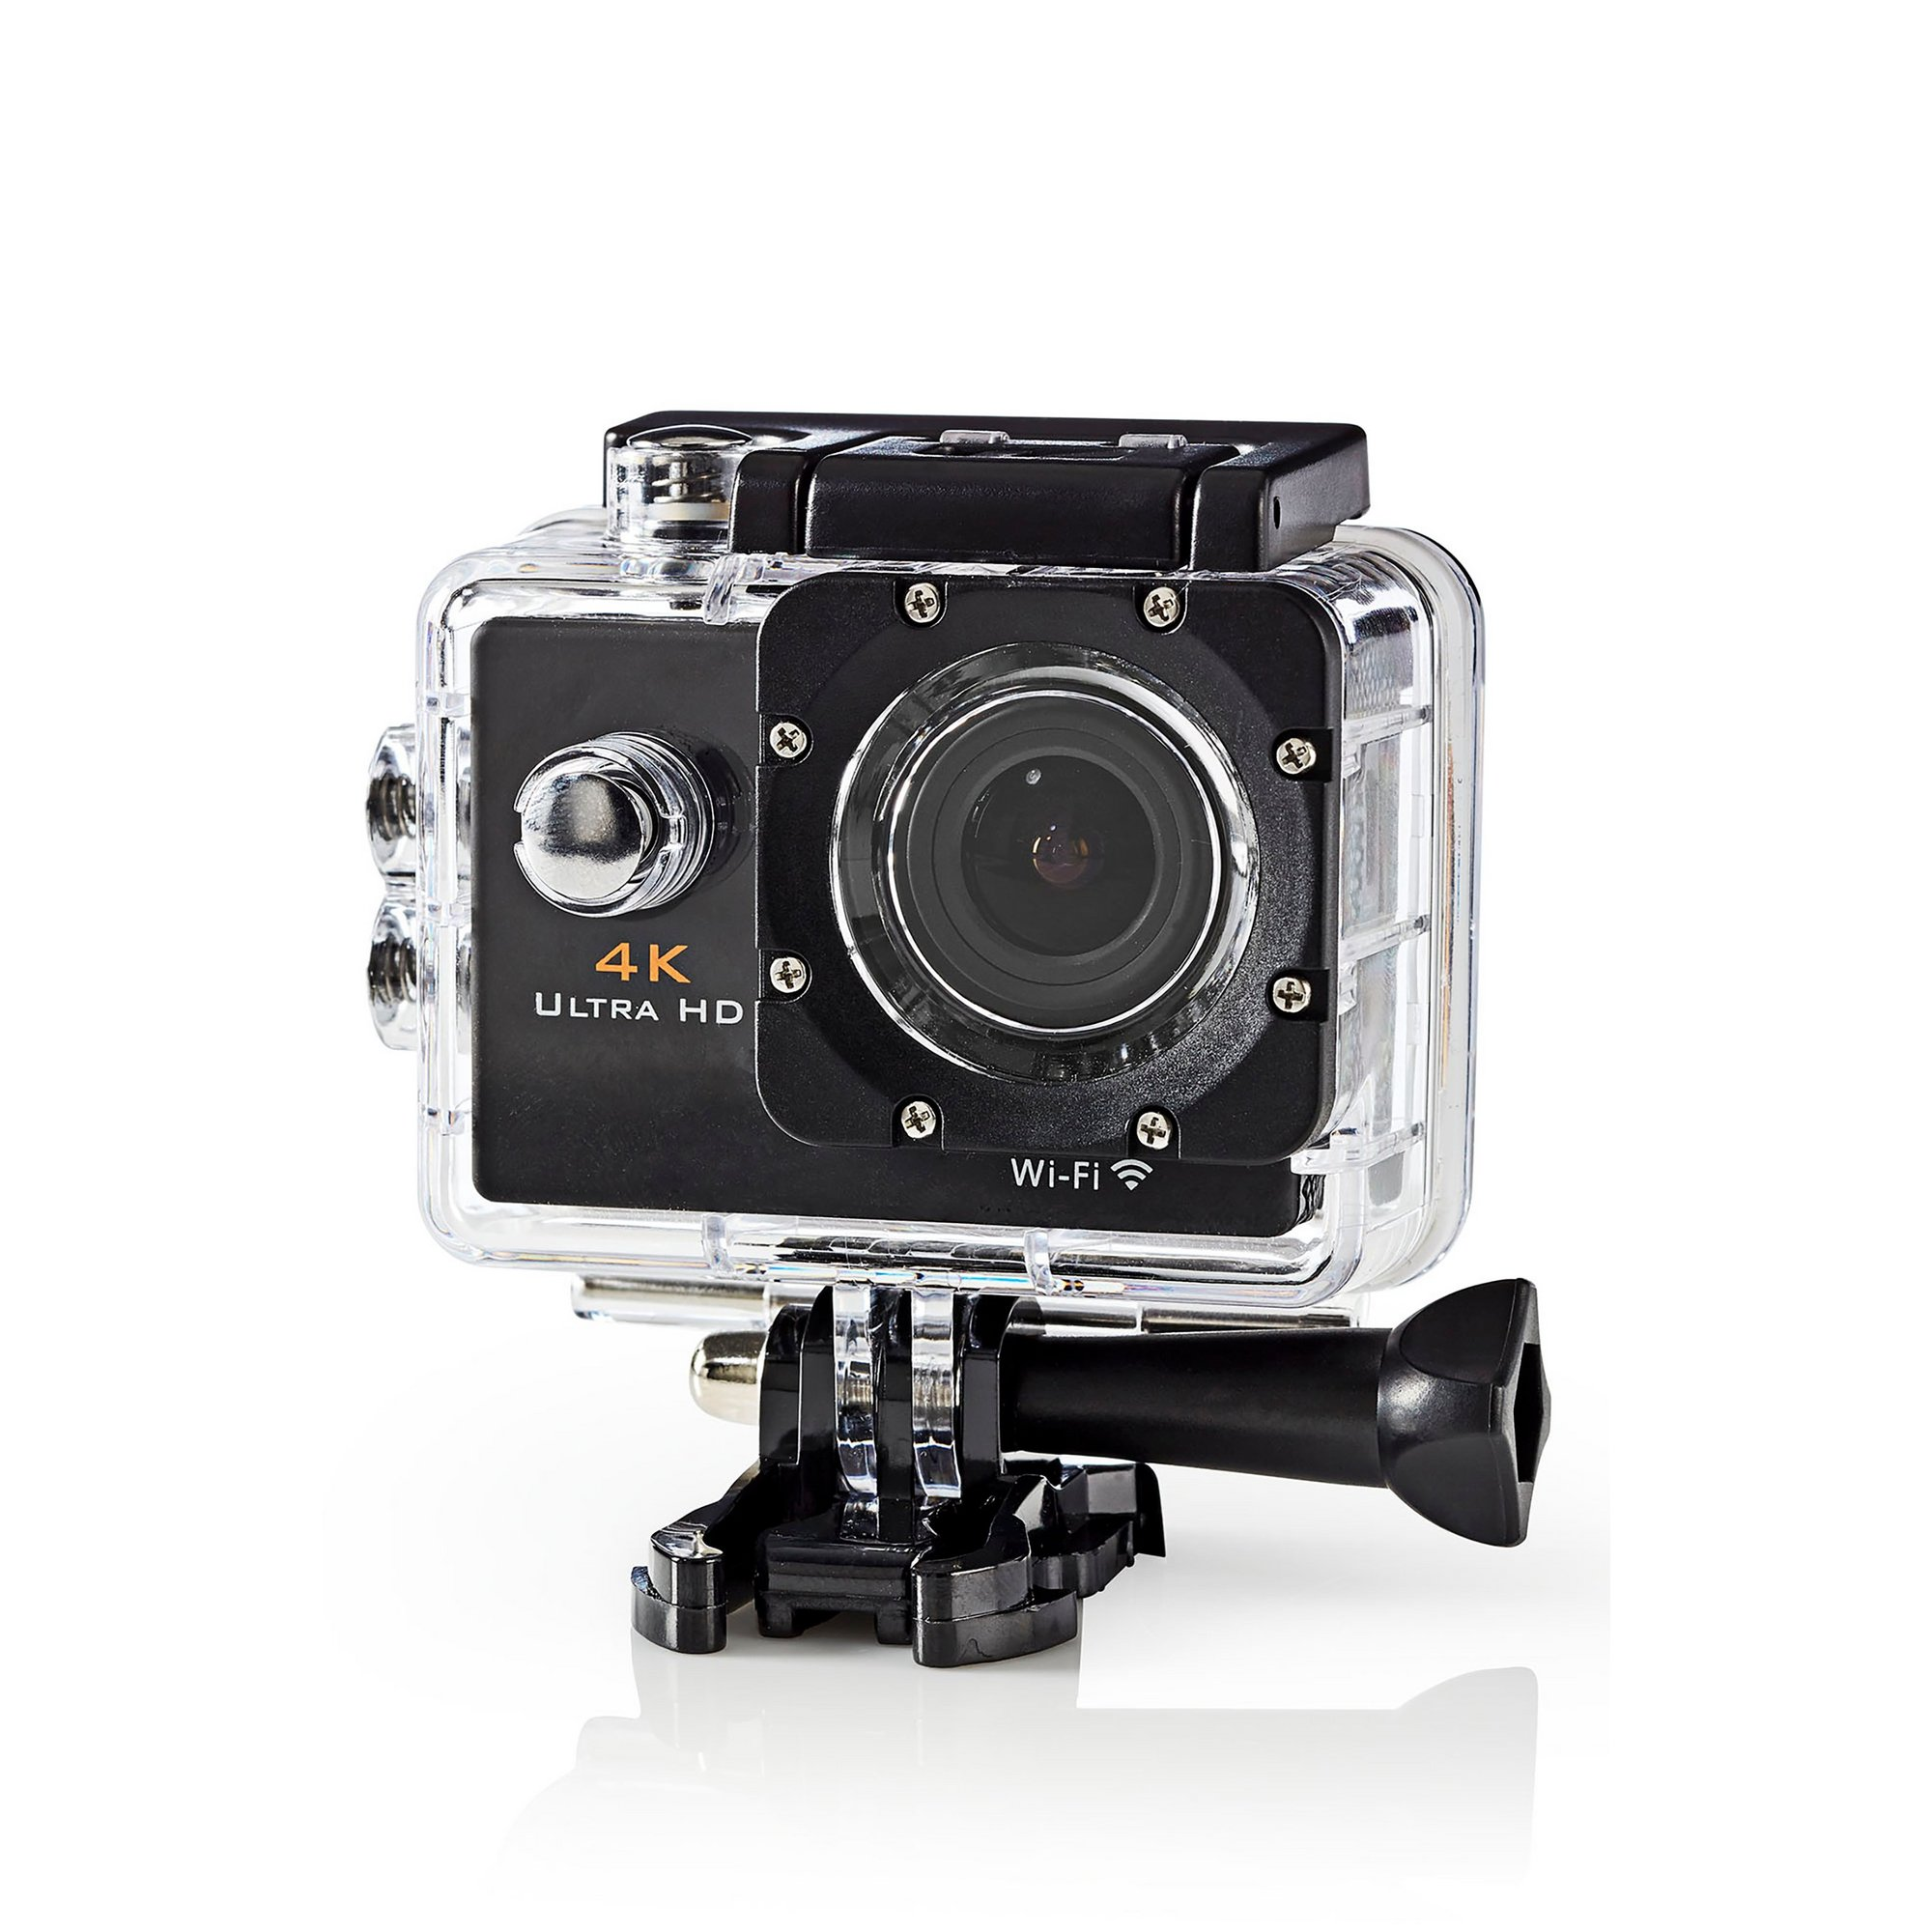 Image of Ultra HD 4K Action Cam with Wifi and Waterproof Case